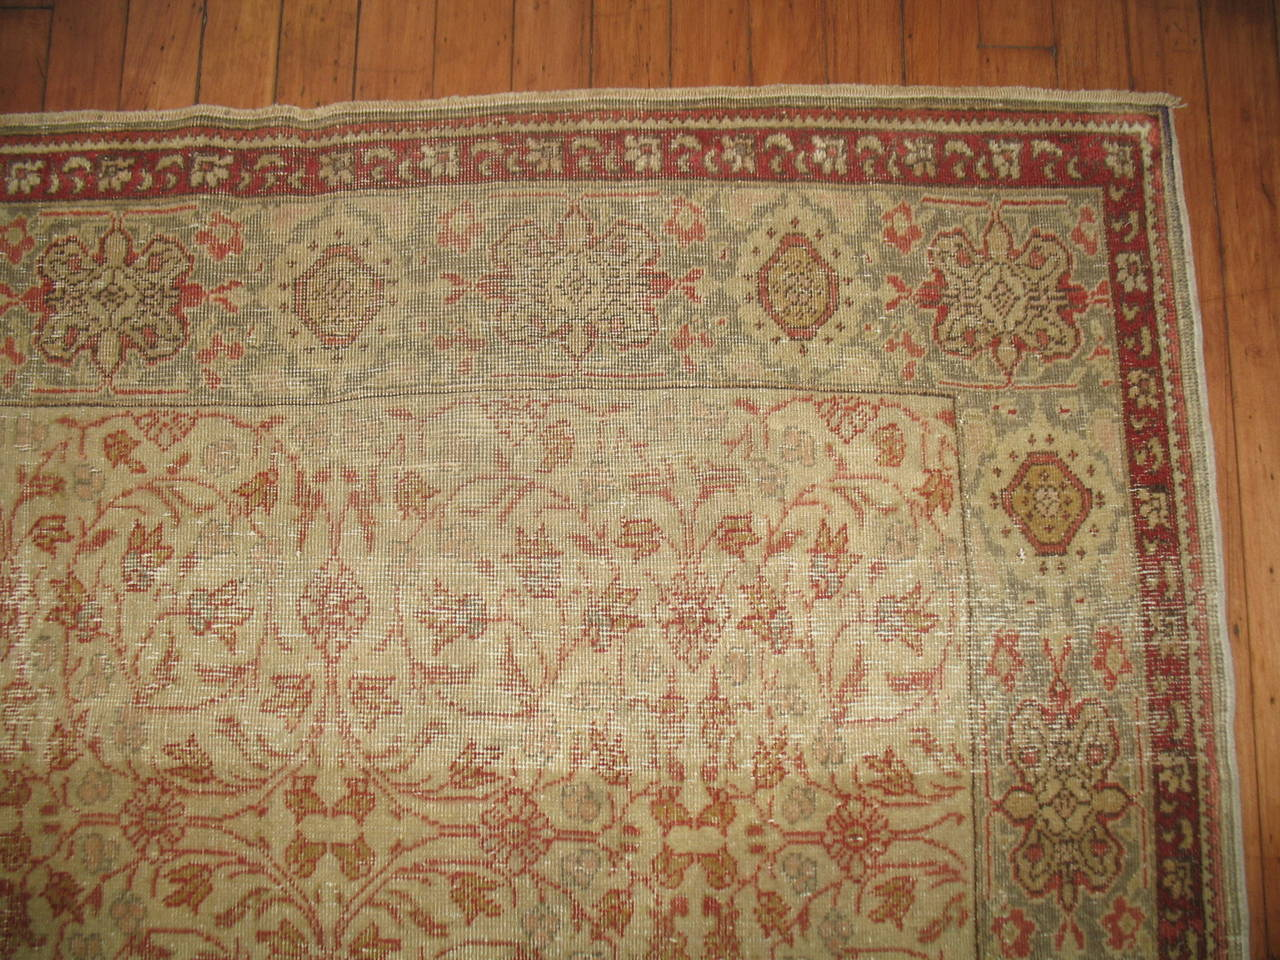 American Empire Shabby Chic Antique Turkish Sivas For Sale